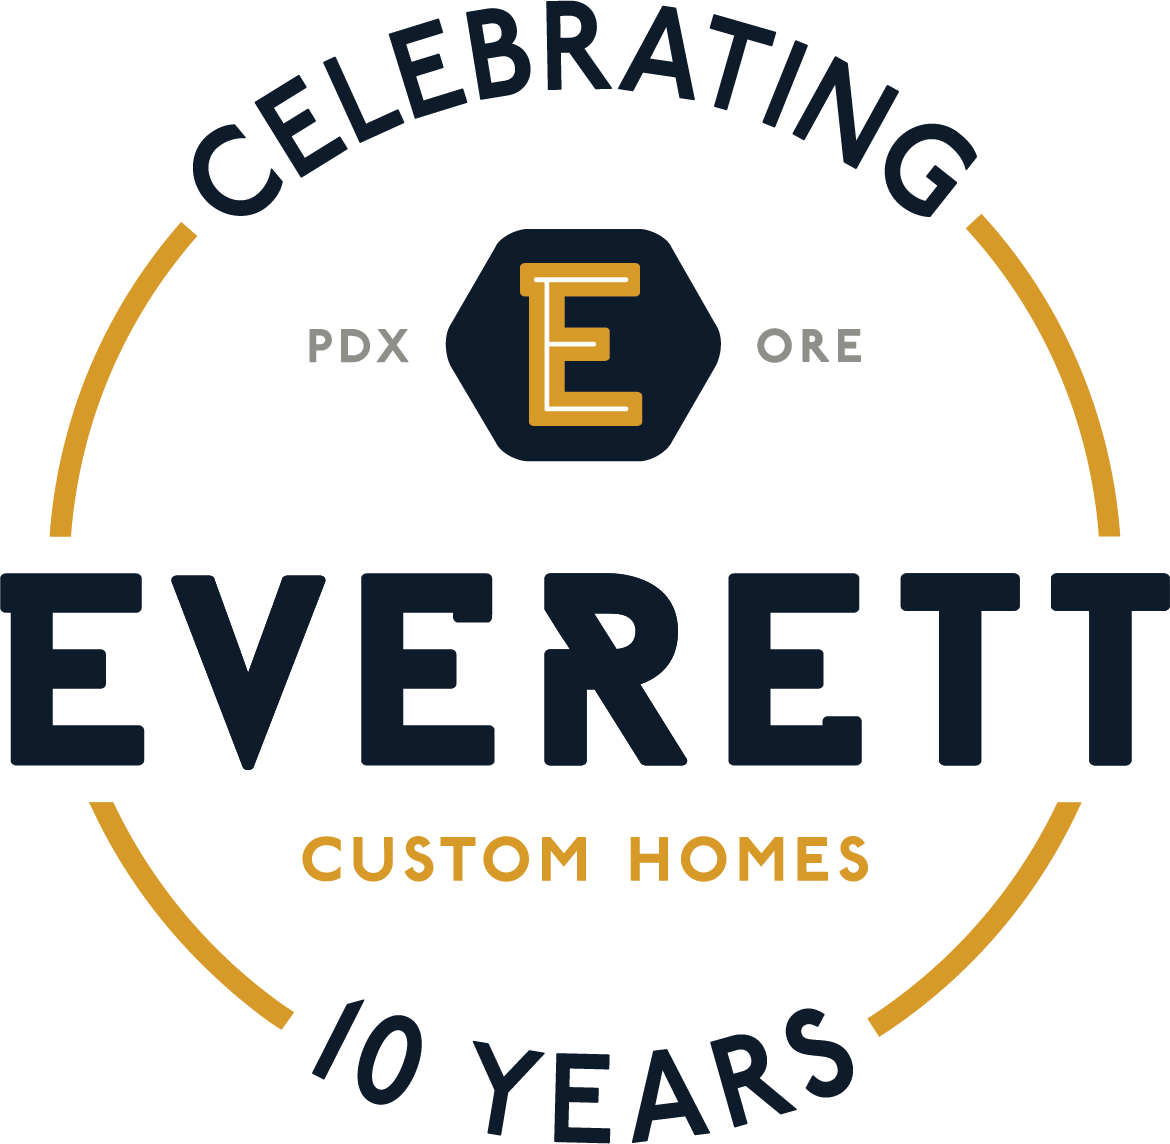 Everett Custom Homes NW logo